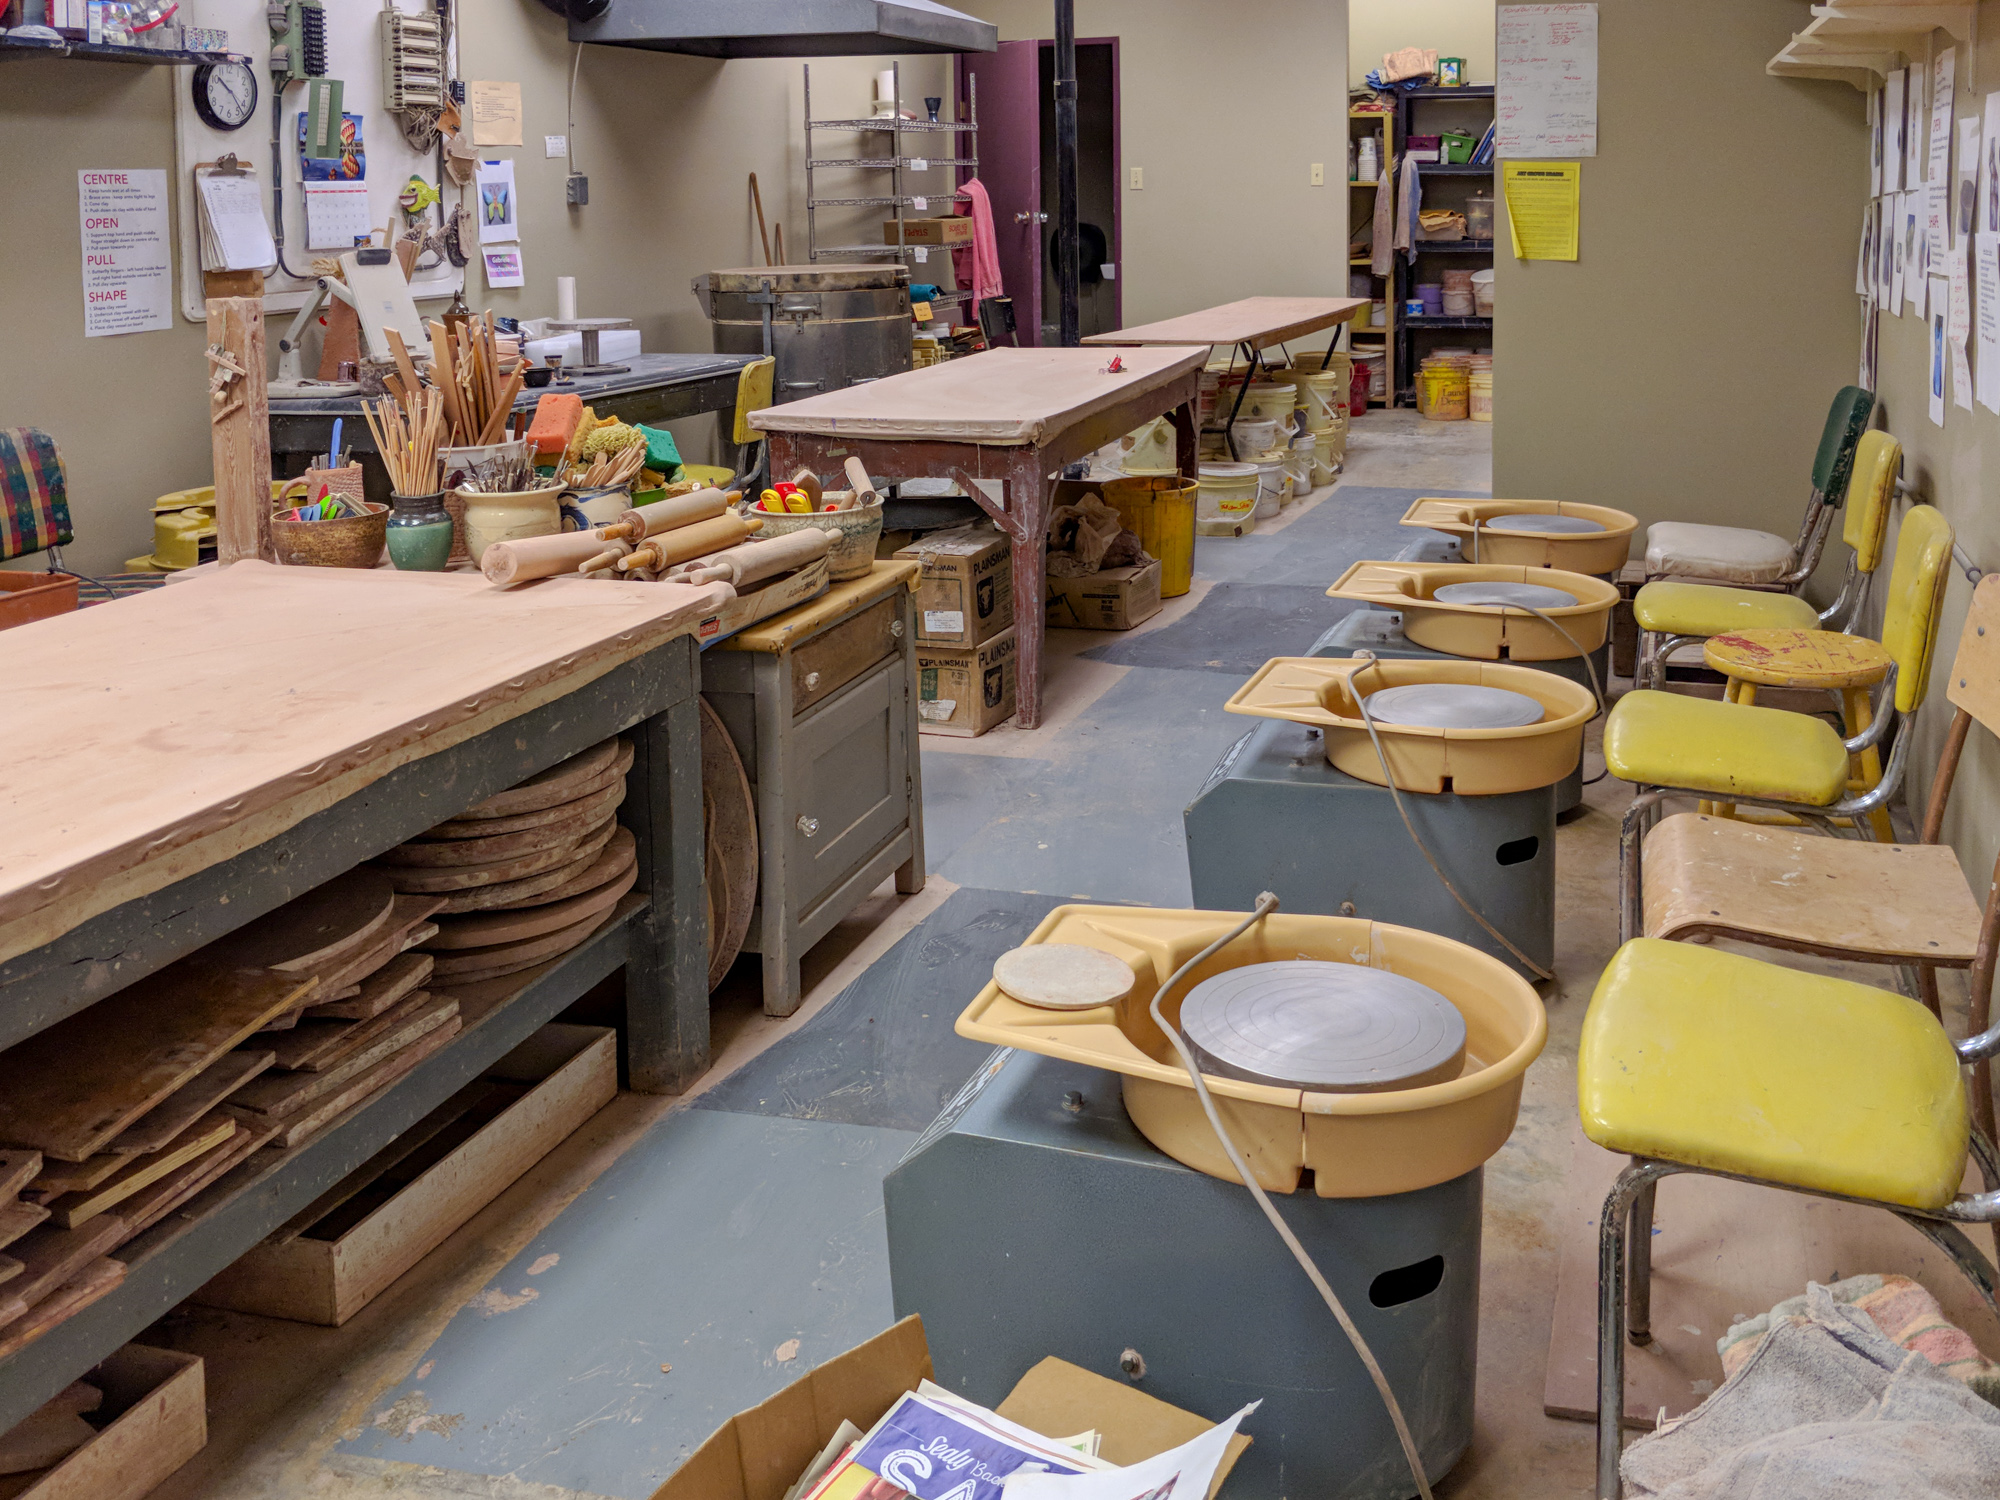 Pottery Studio - The Pottery Studio is equipped with 8 pottery wheels and an electric kiln.